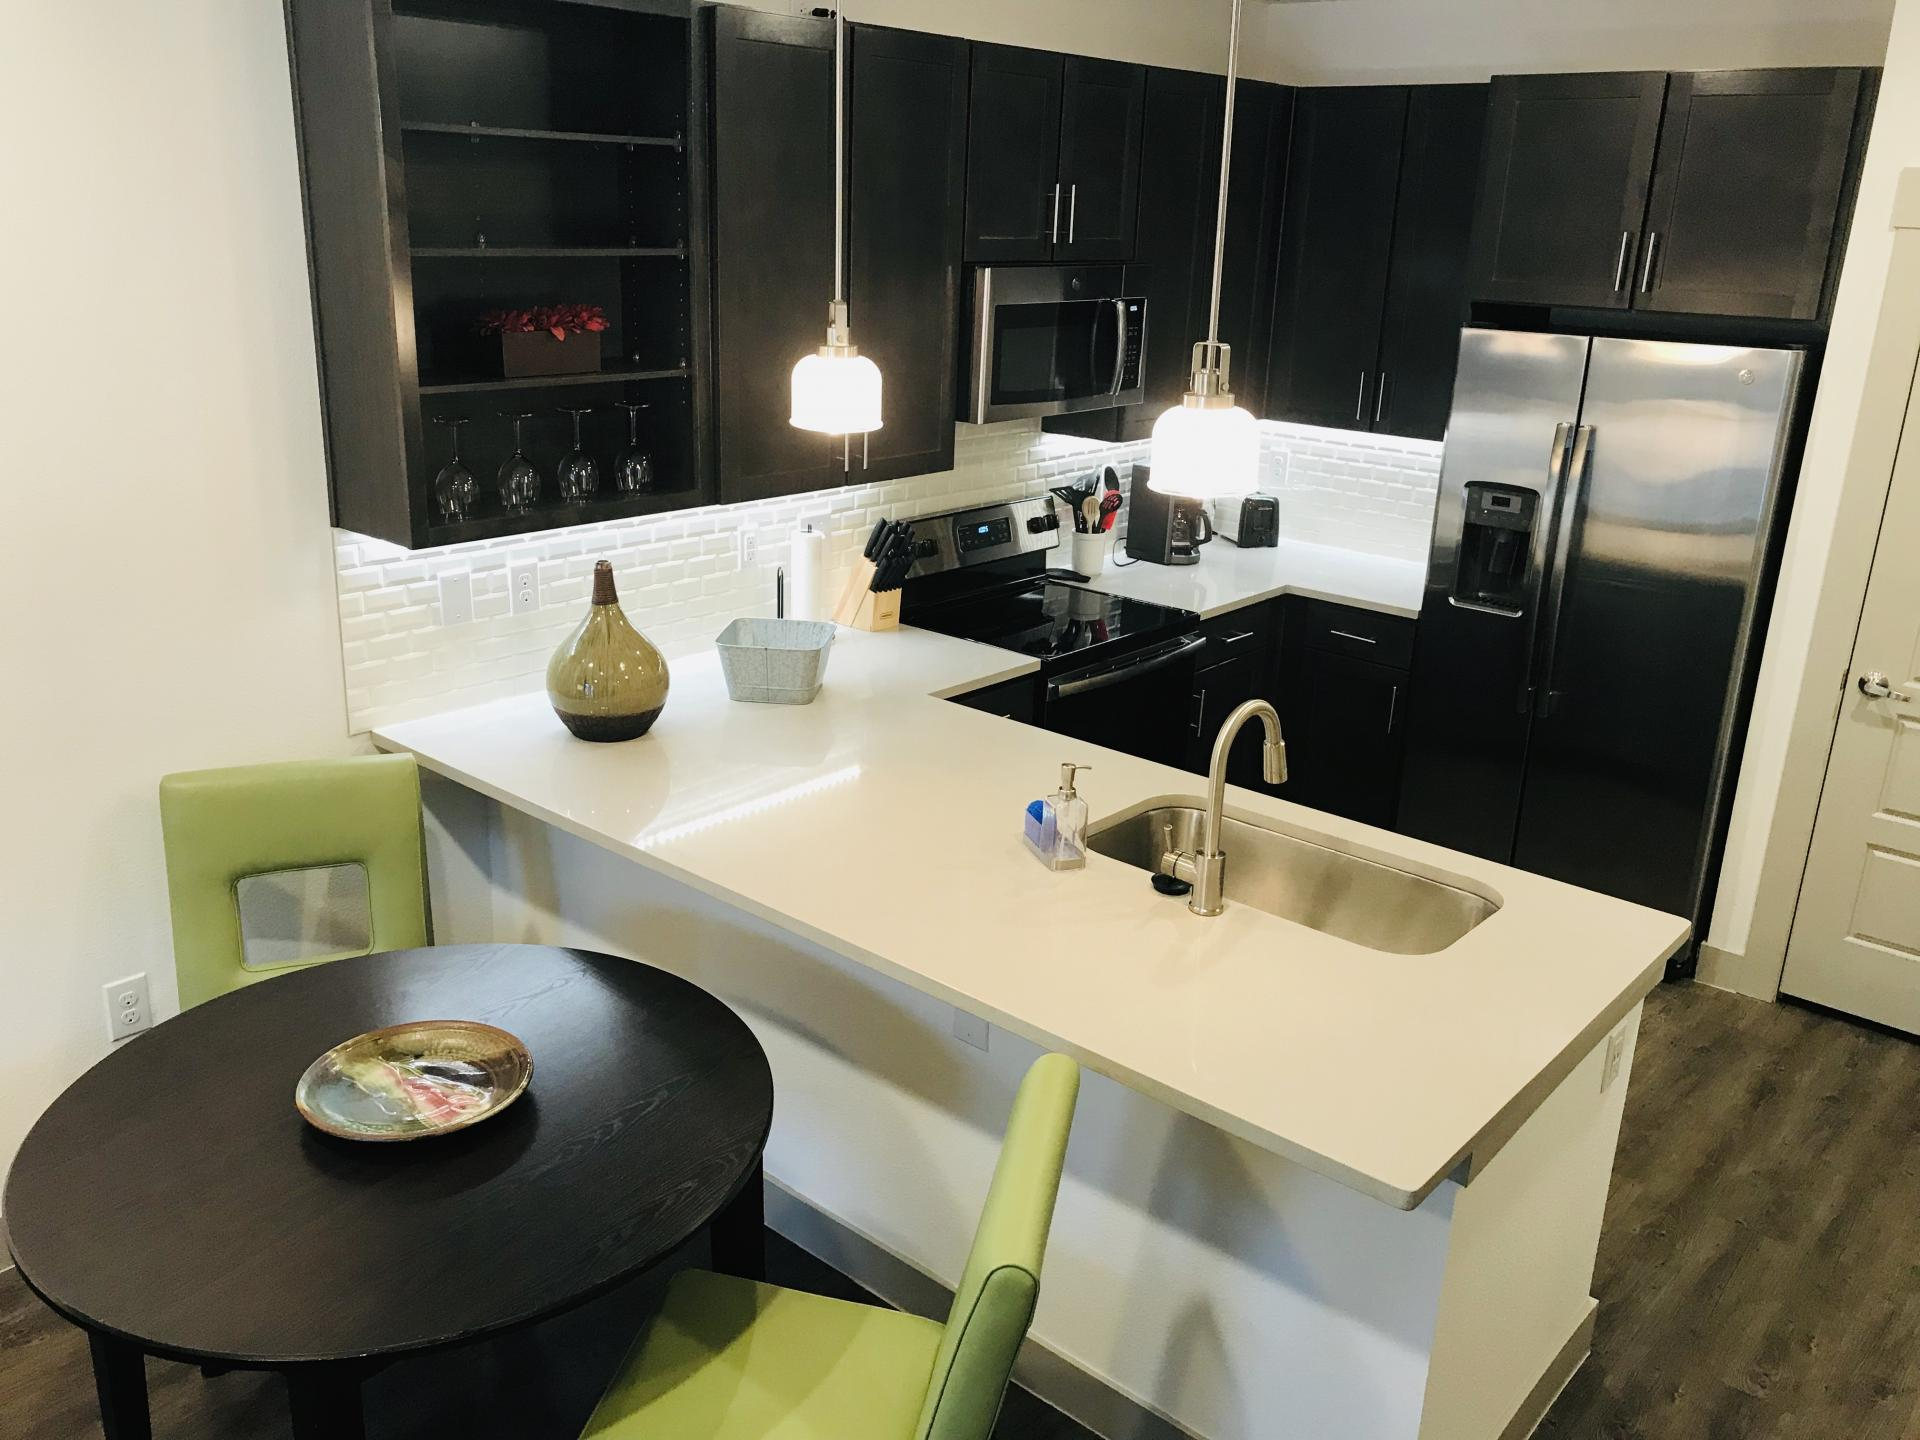 Kitchen at Preserve at Iron Horse Apartment, Centre, Franklin